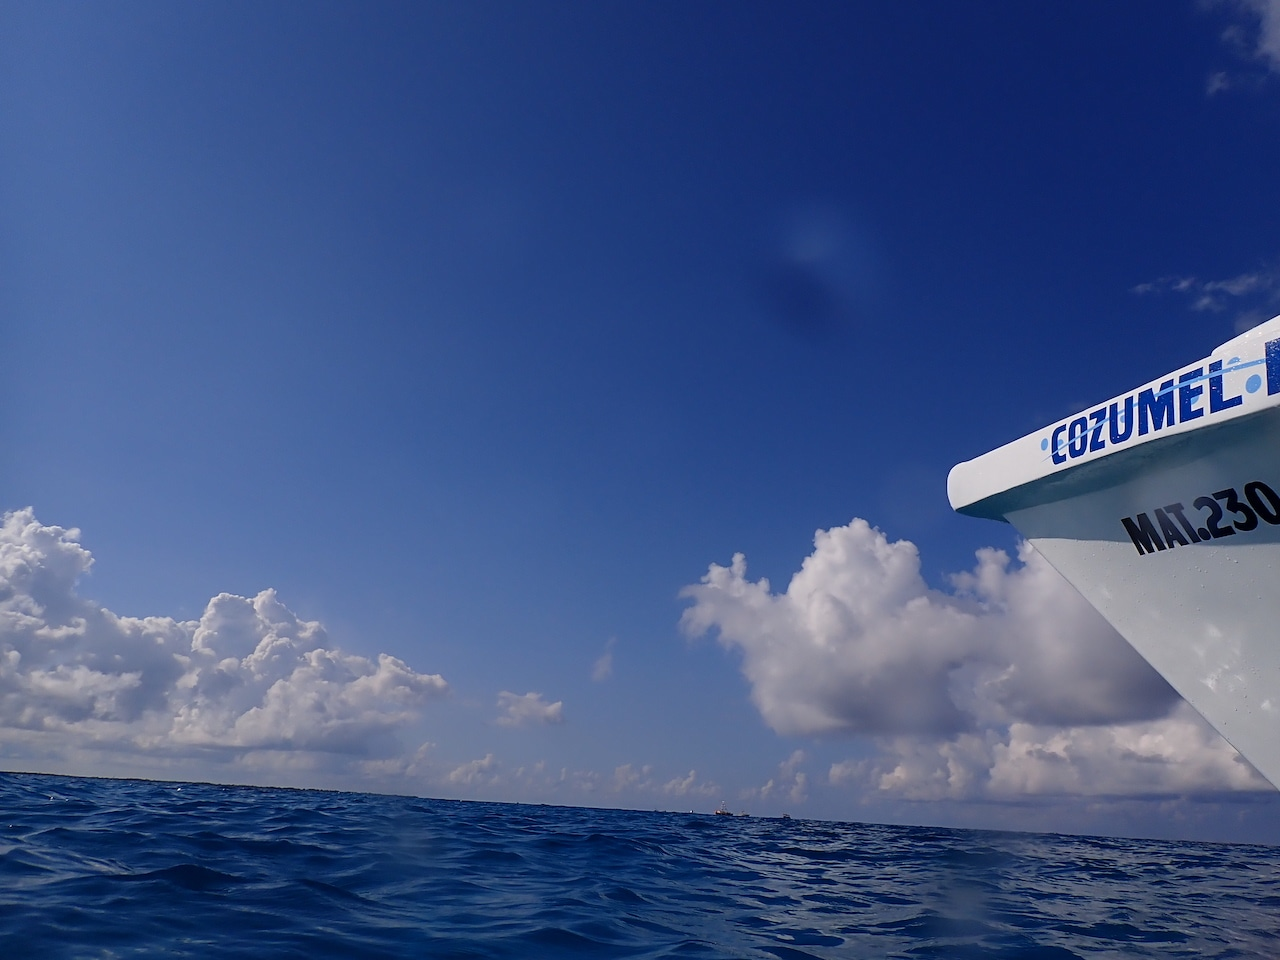 Scuba Diving in Cozumel: Fantastic Diving All Year Round